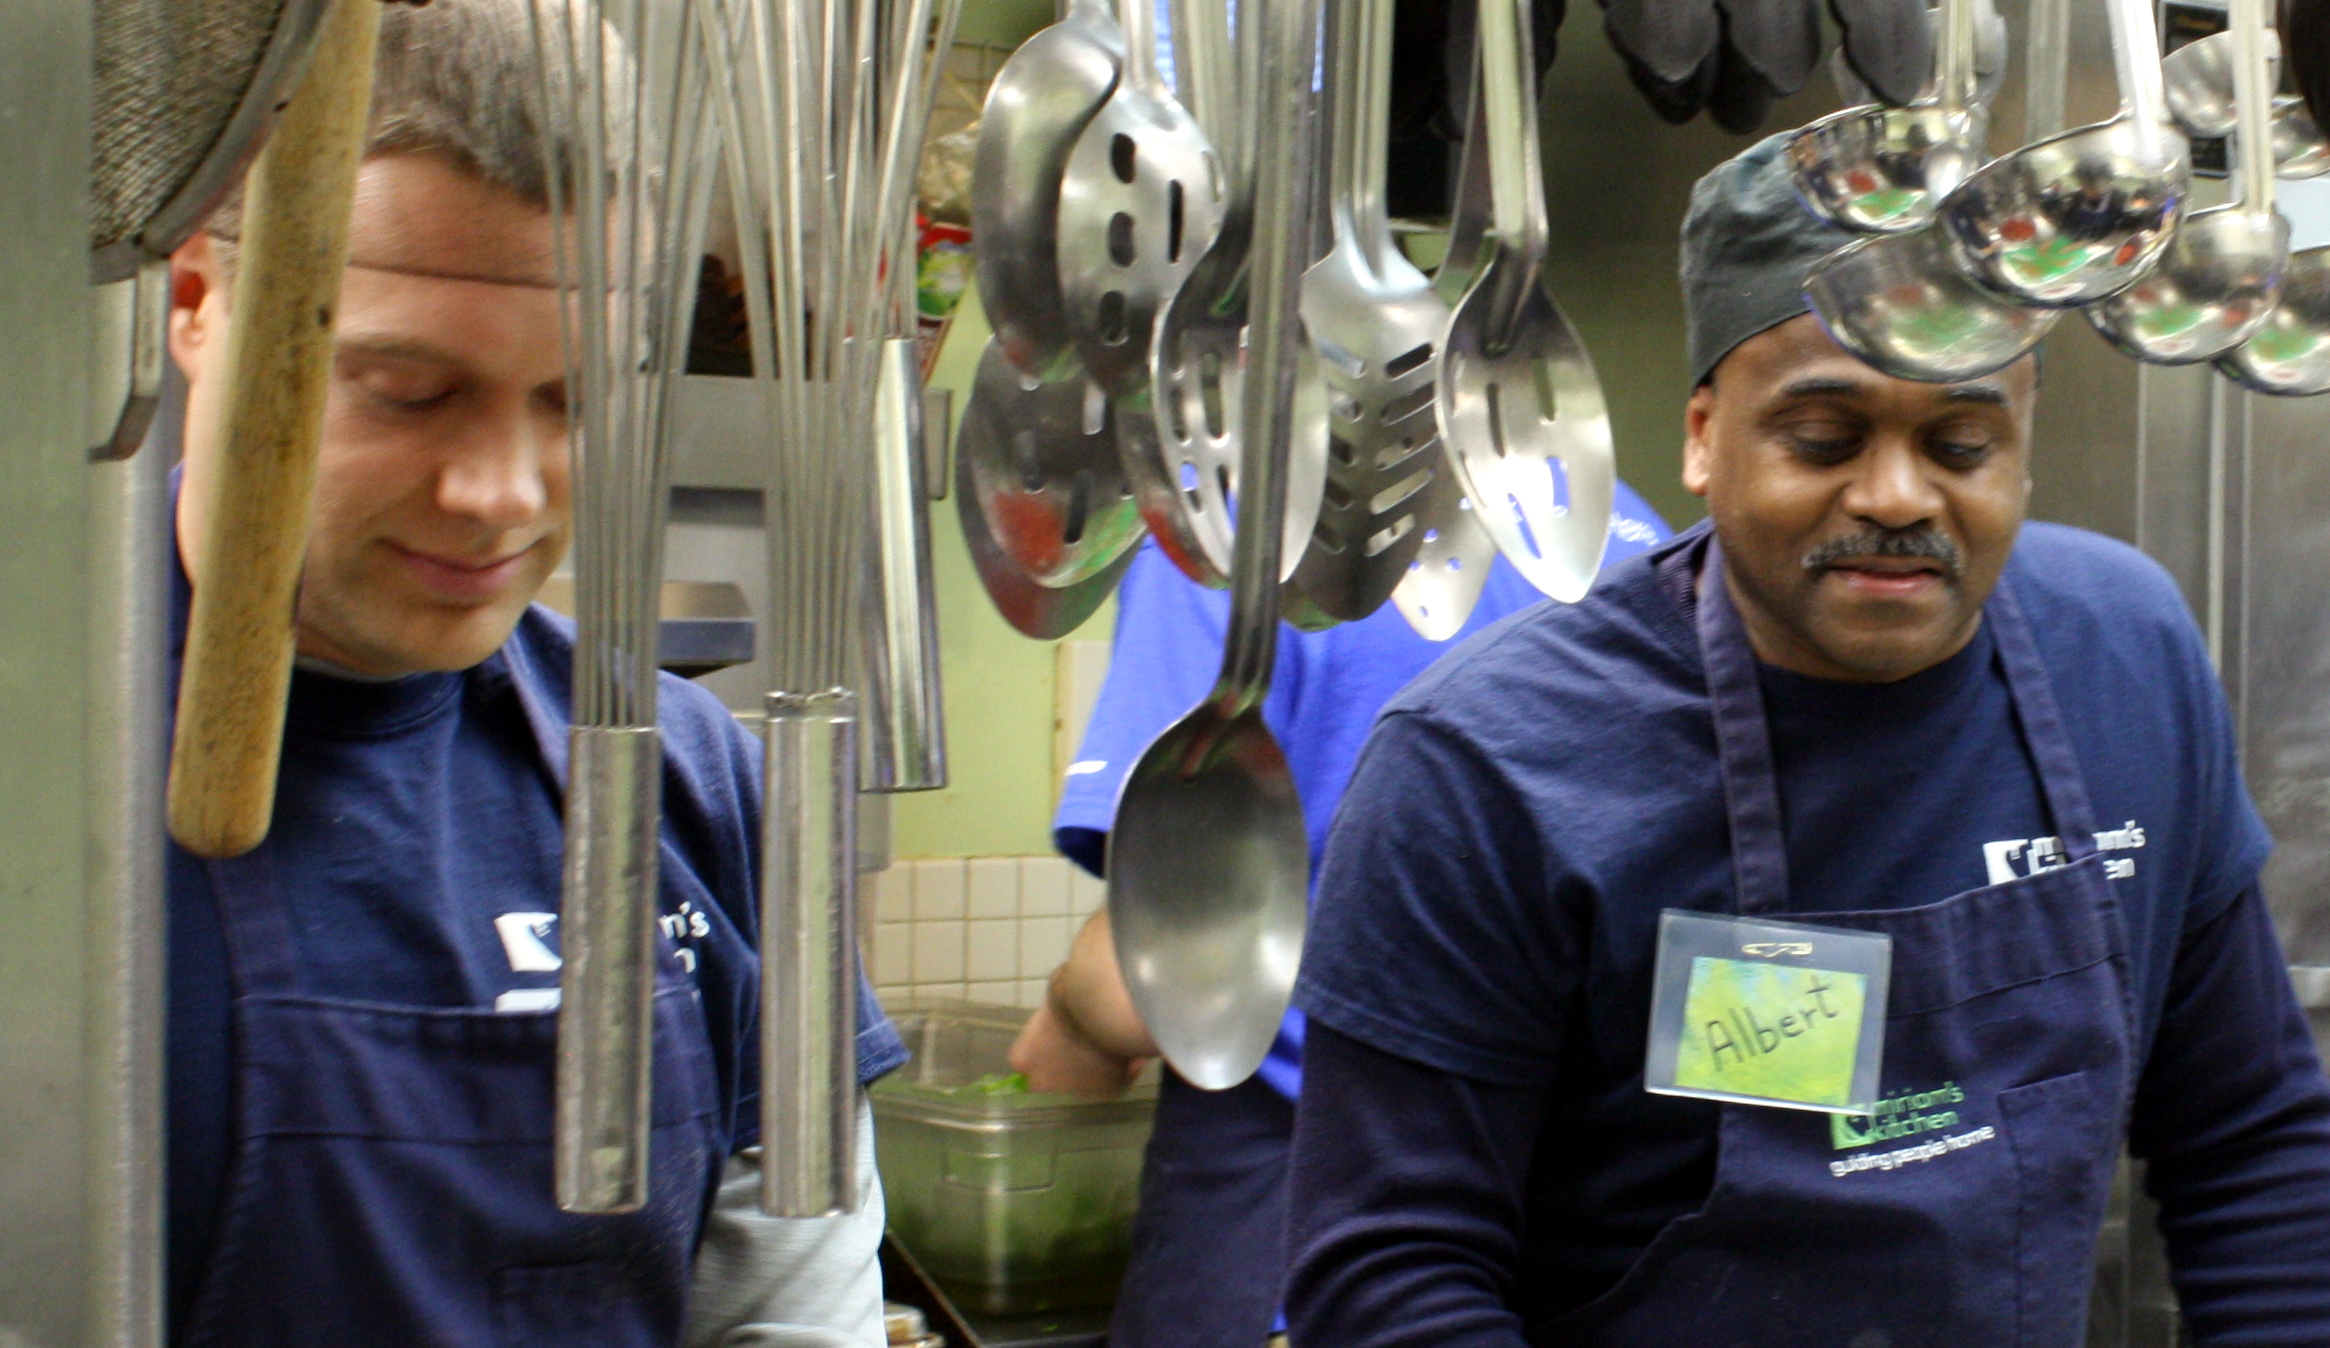 Two men working in a industrial kitchen